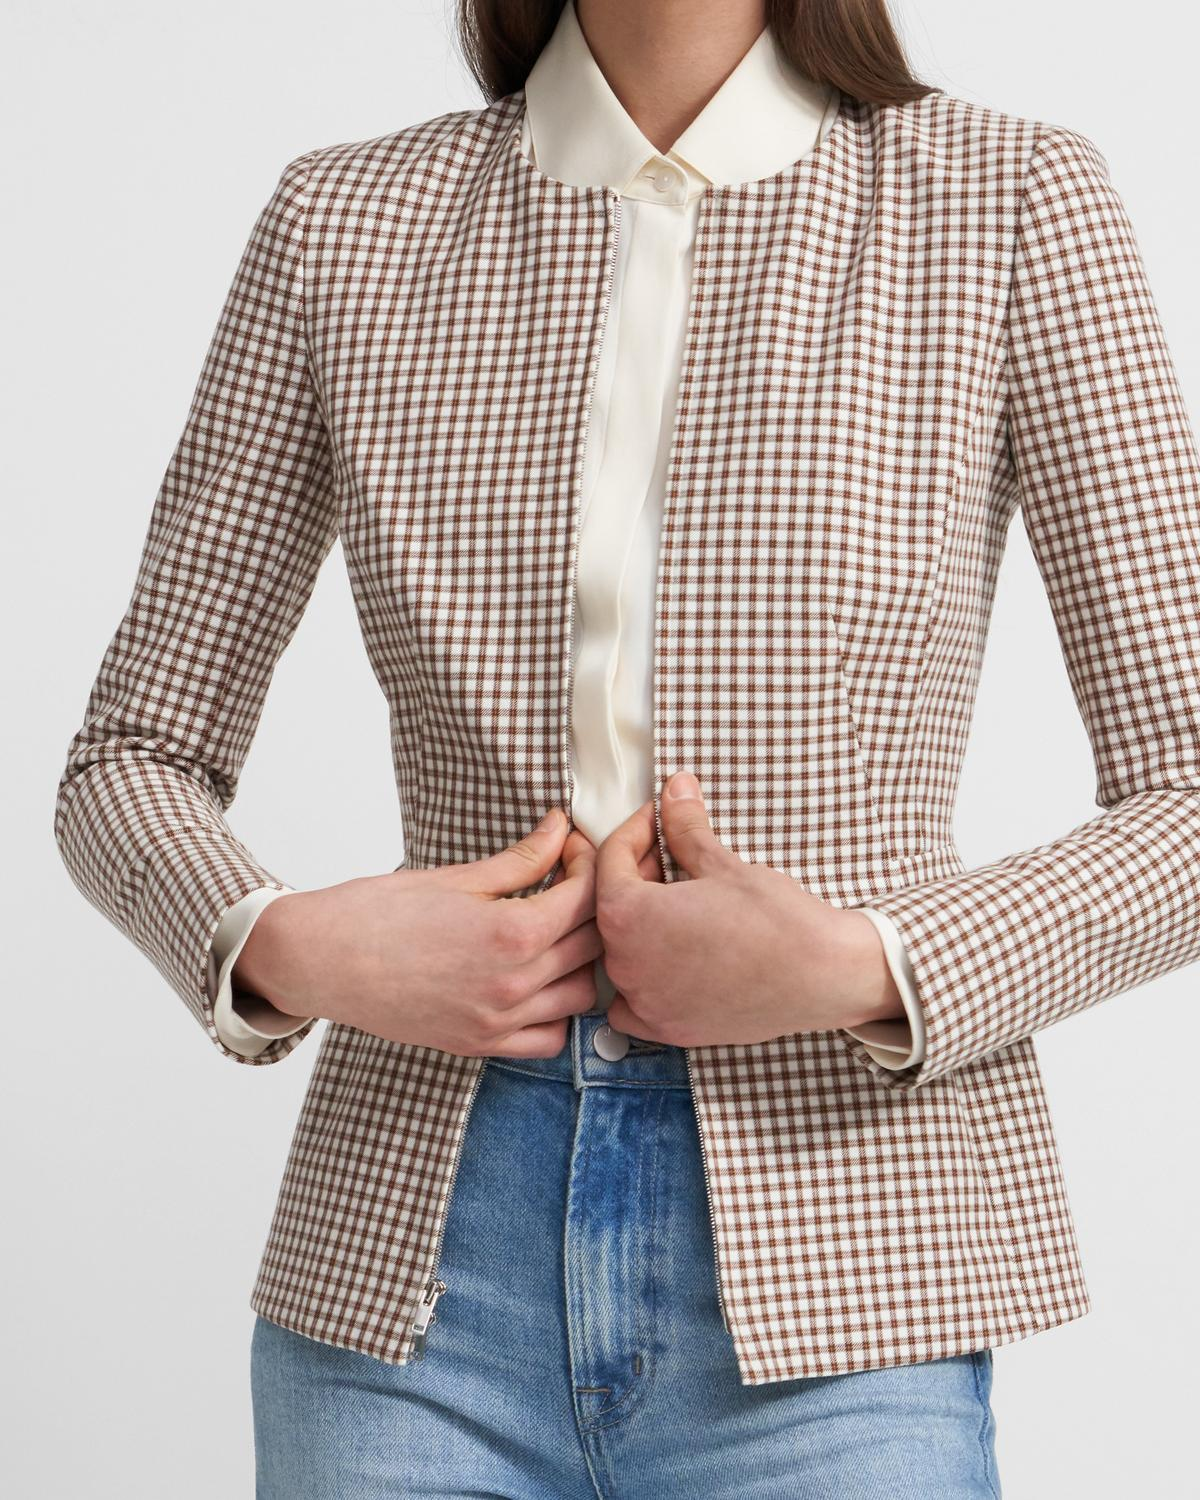 Sculpture Blazer in Grid Stretch Cotton 0 - click to view larger image